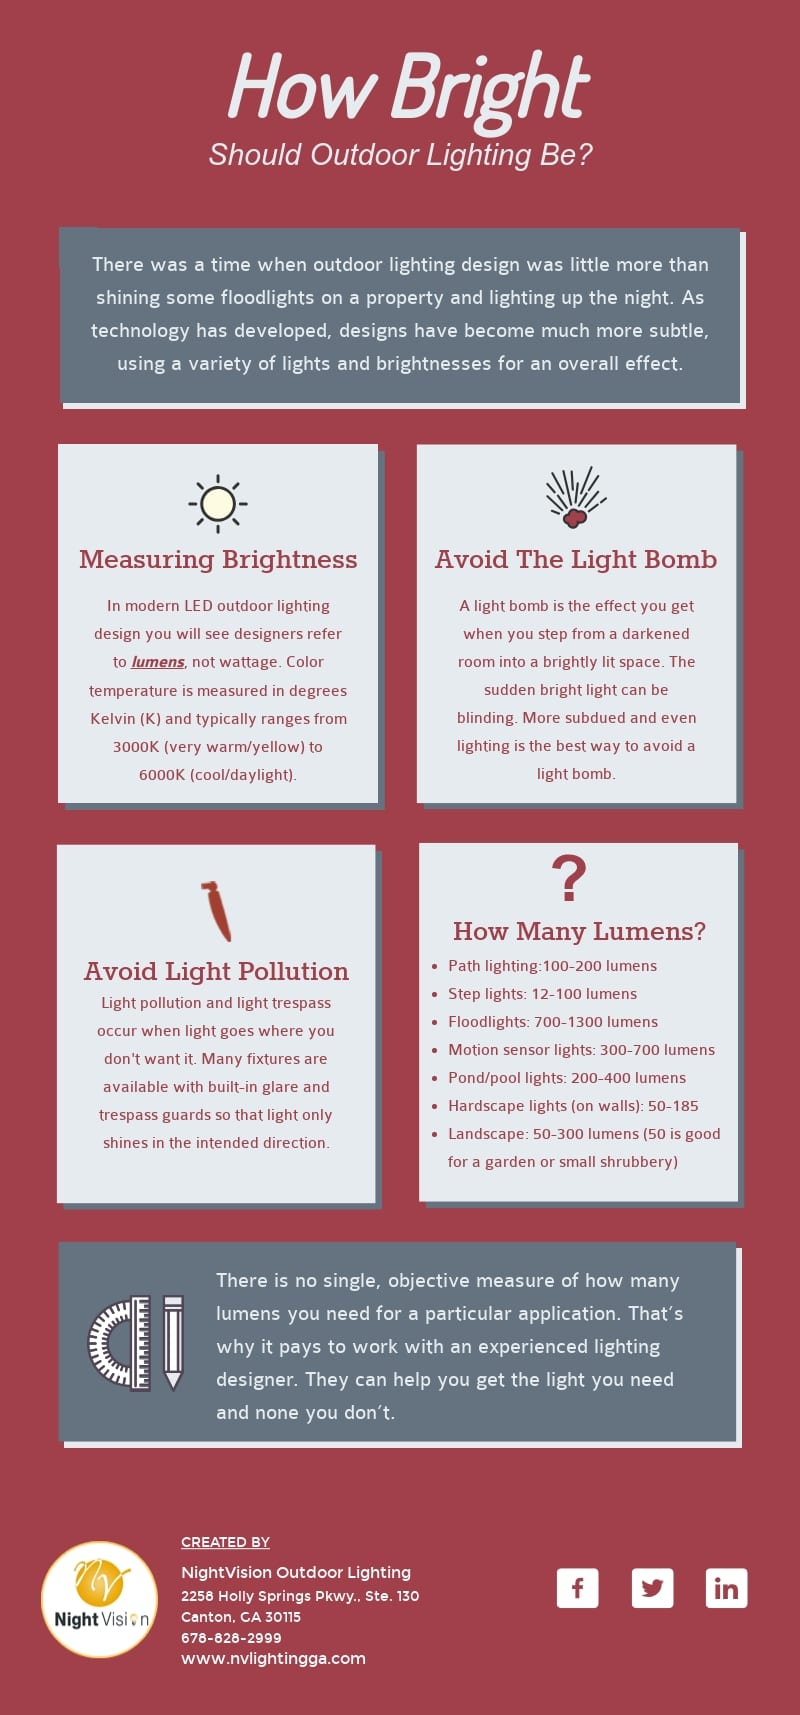 How Bright Should Outdoor Lighting Be [infographic]